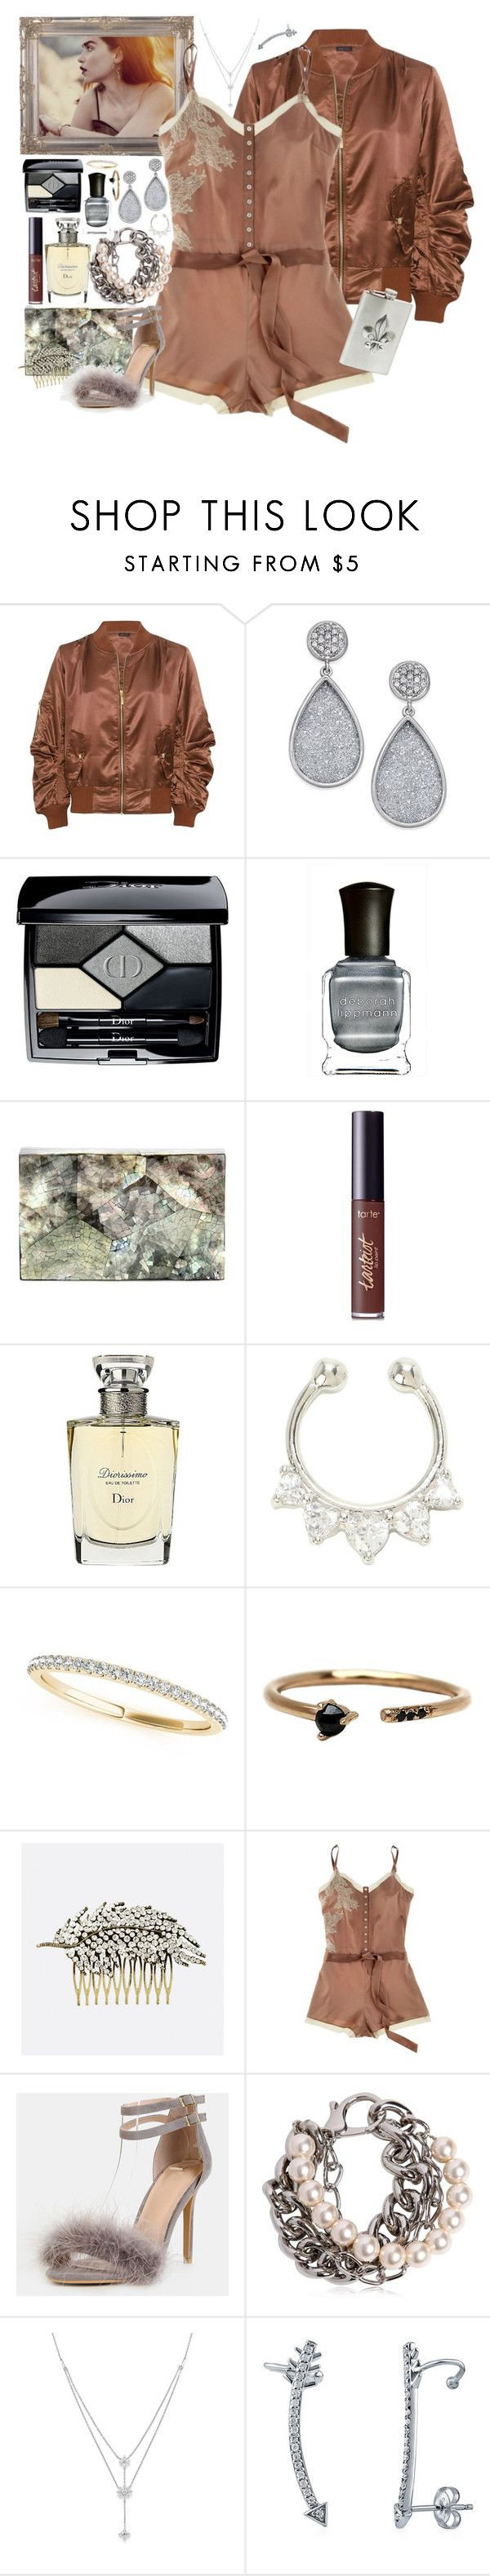 """""""Do What U Want - Lady Gaga"""" by leo8august ❤ liked on Polyvore featuring Christian Dior, Deborah Lippmann, Nathalie Trad, tarte, Allurez, LUMO, Avenue, Elle Macpherson Intimates, Moschino and Bloomingdale's"""